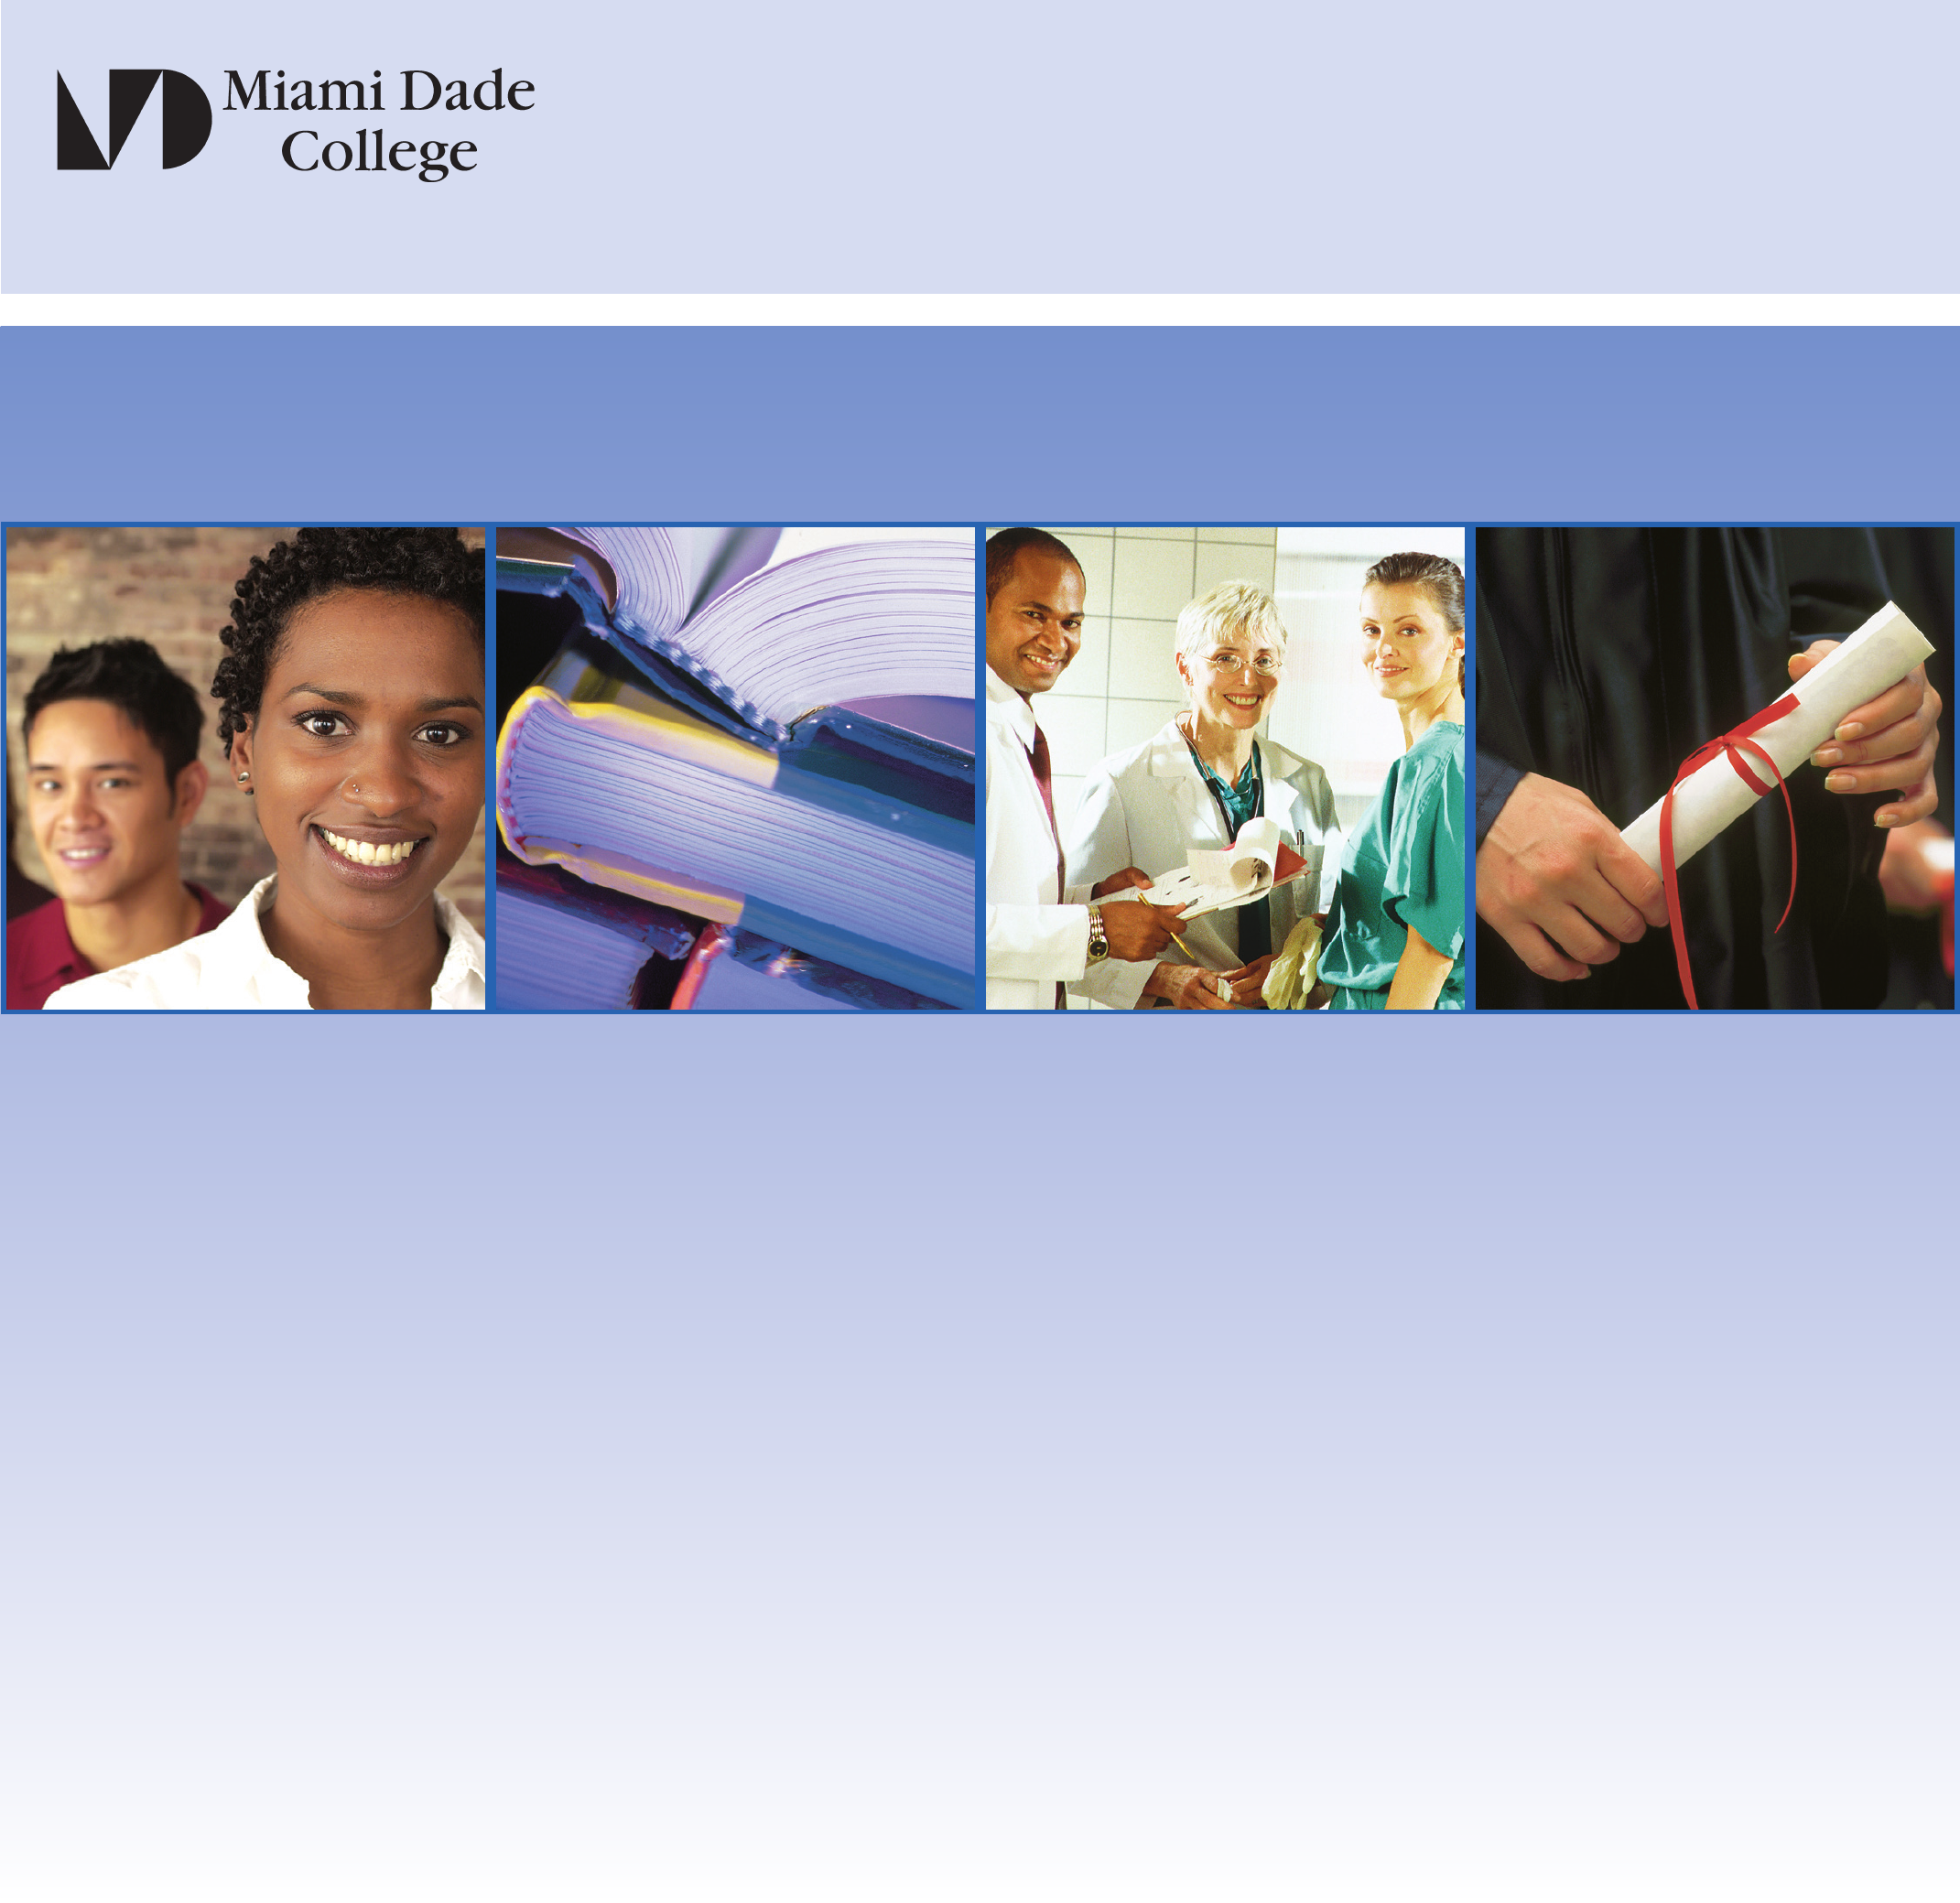 miami dade college application form for admission free download